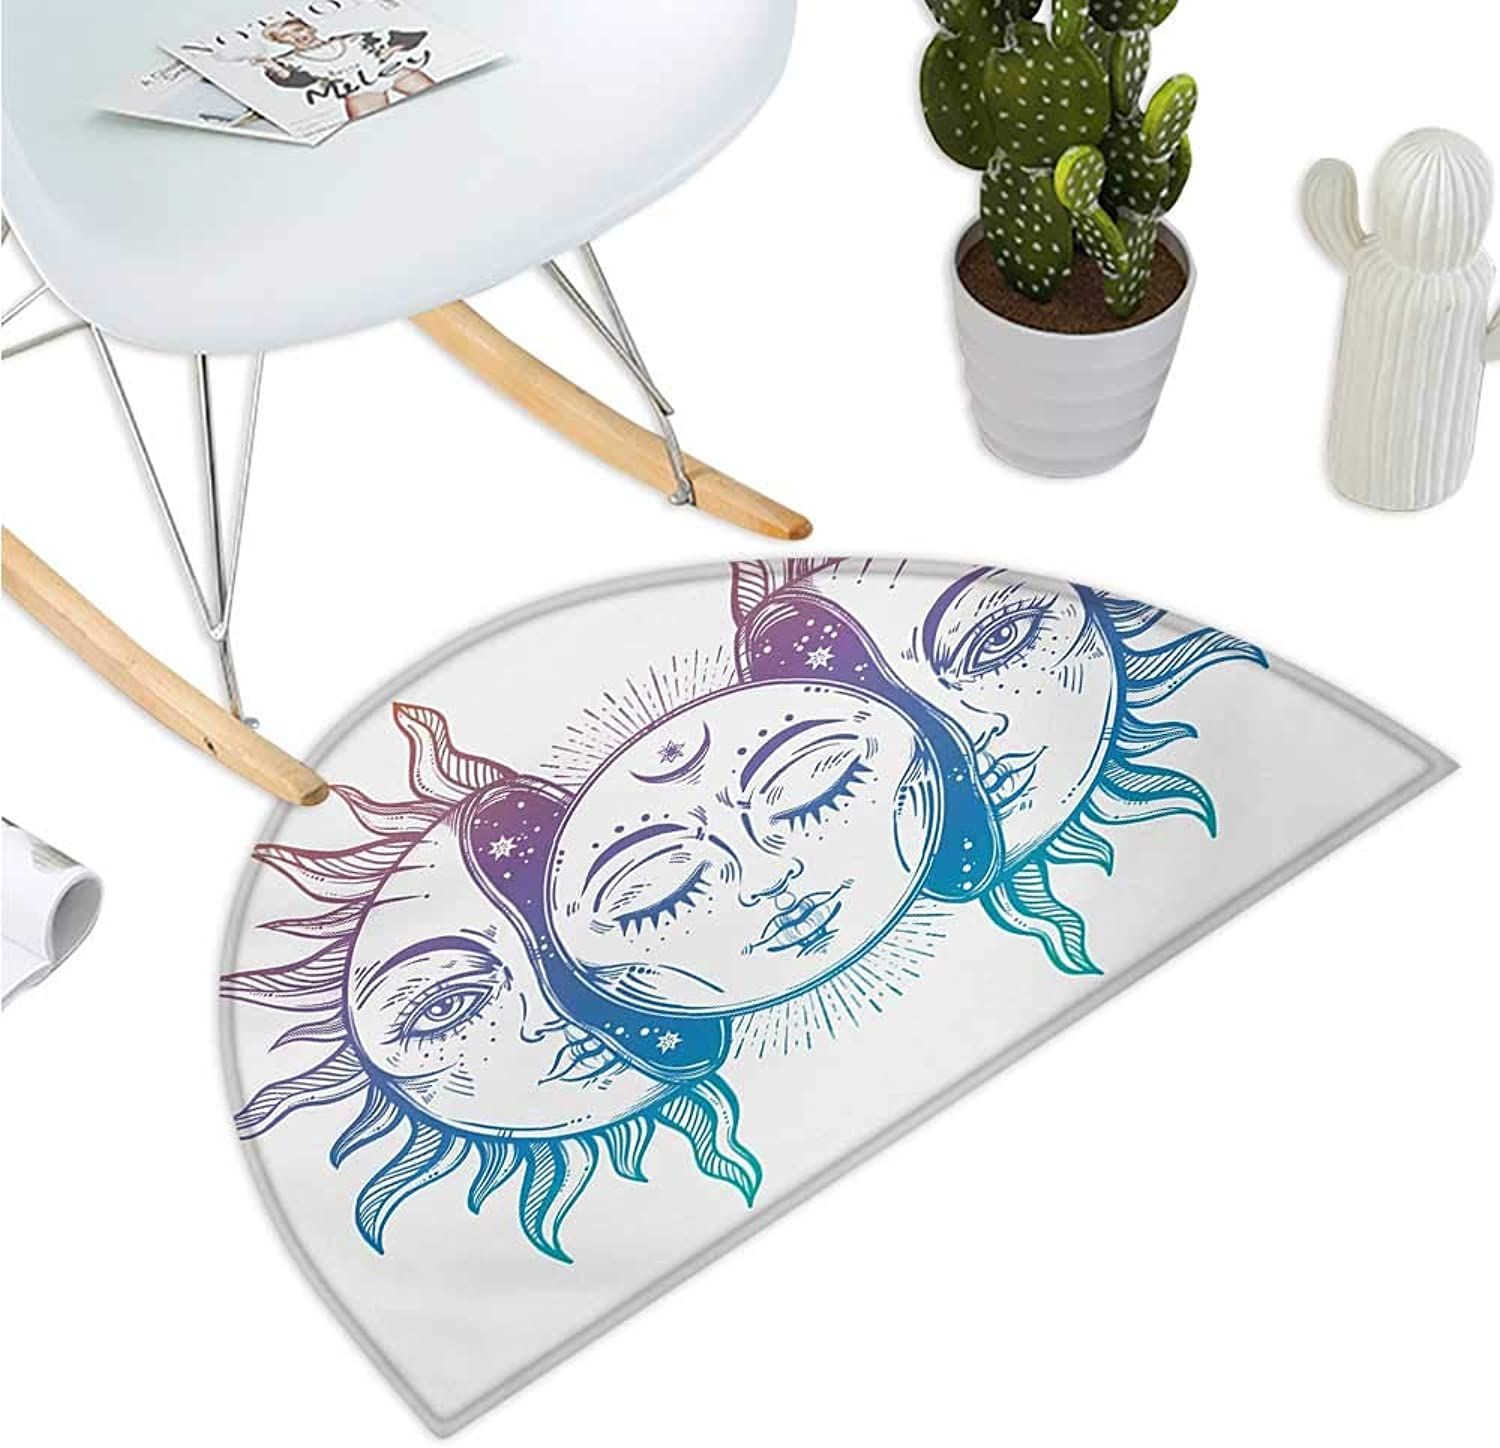 Moon Semicircle Doormat Psychedelic Representation Heavenly Bodies Faces Eastern Oriental Inspired Image Entry Door Mat H 35.4  xD 53.1  purplec bluee White